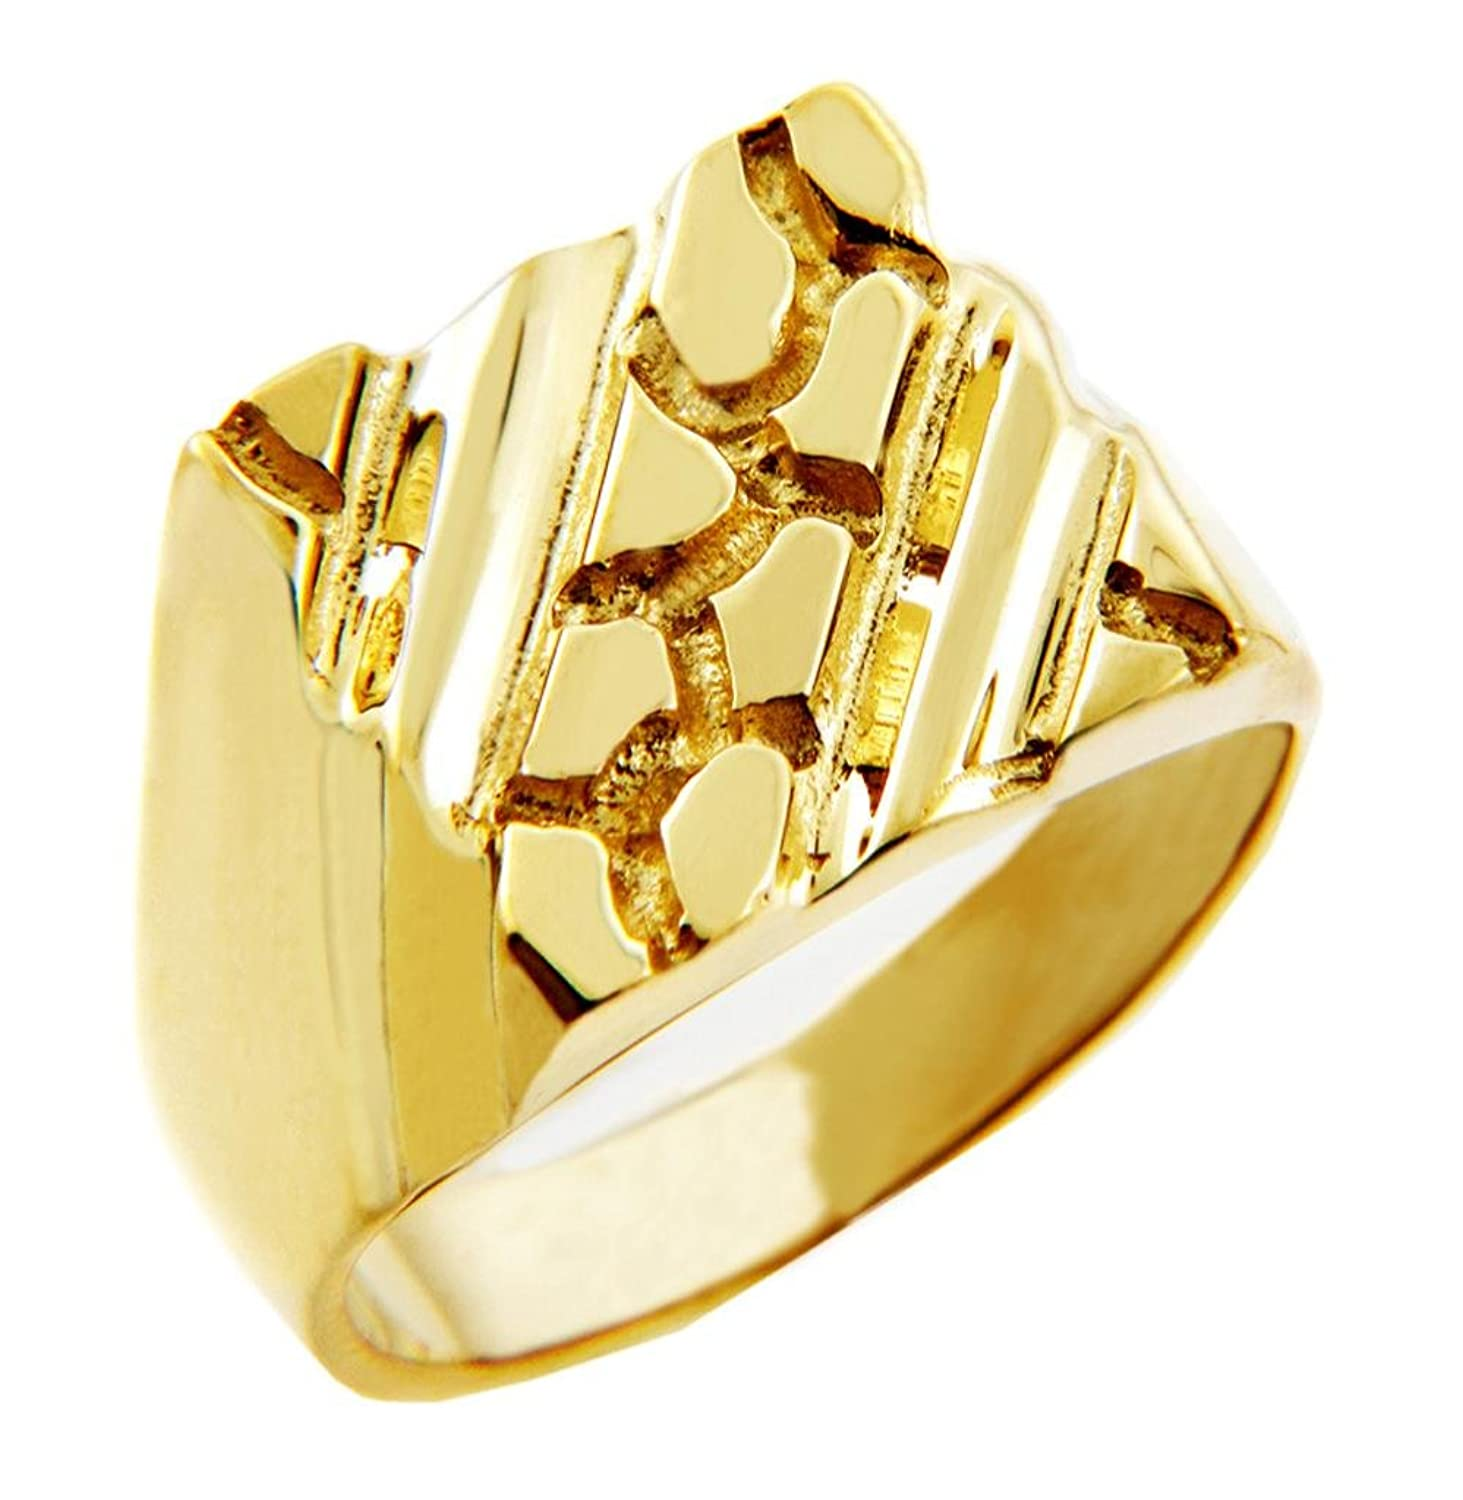 consignment upscale ring gold citrine jewellery